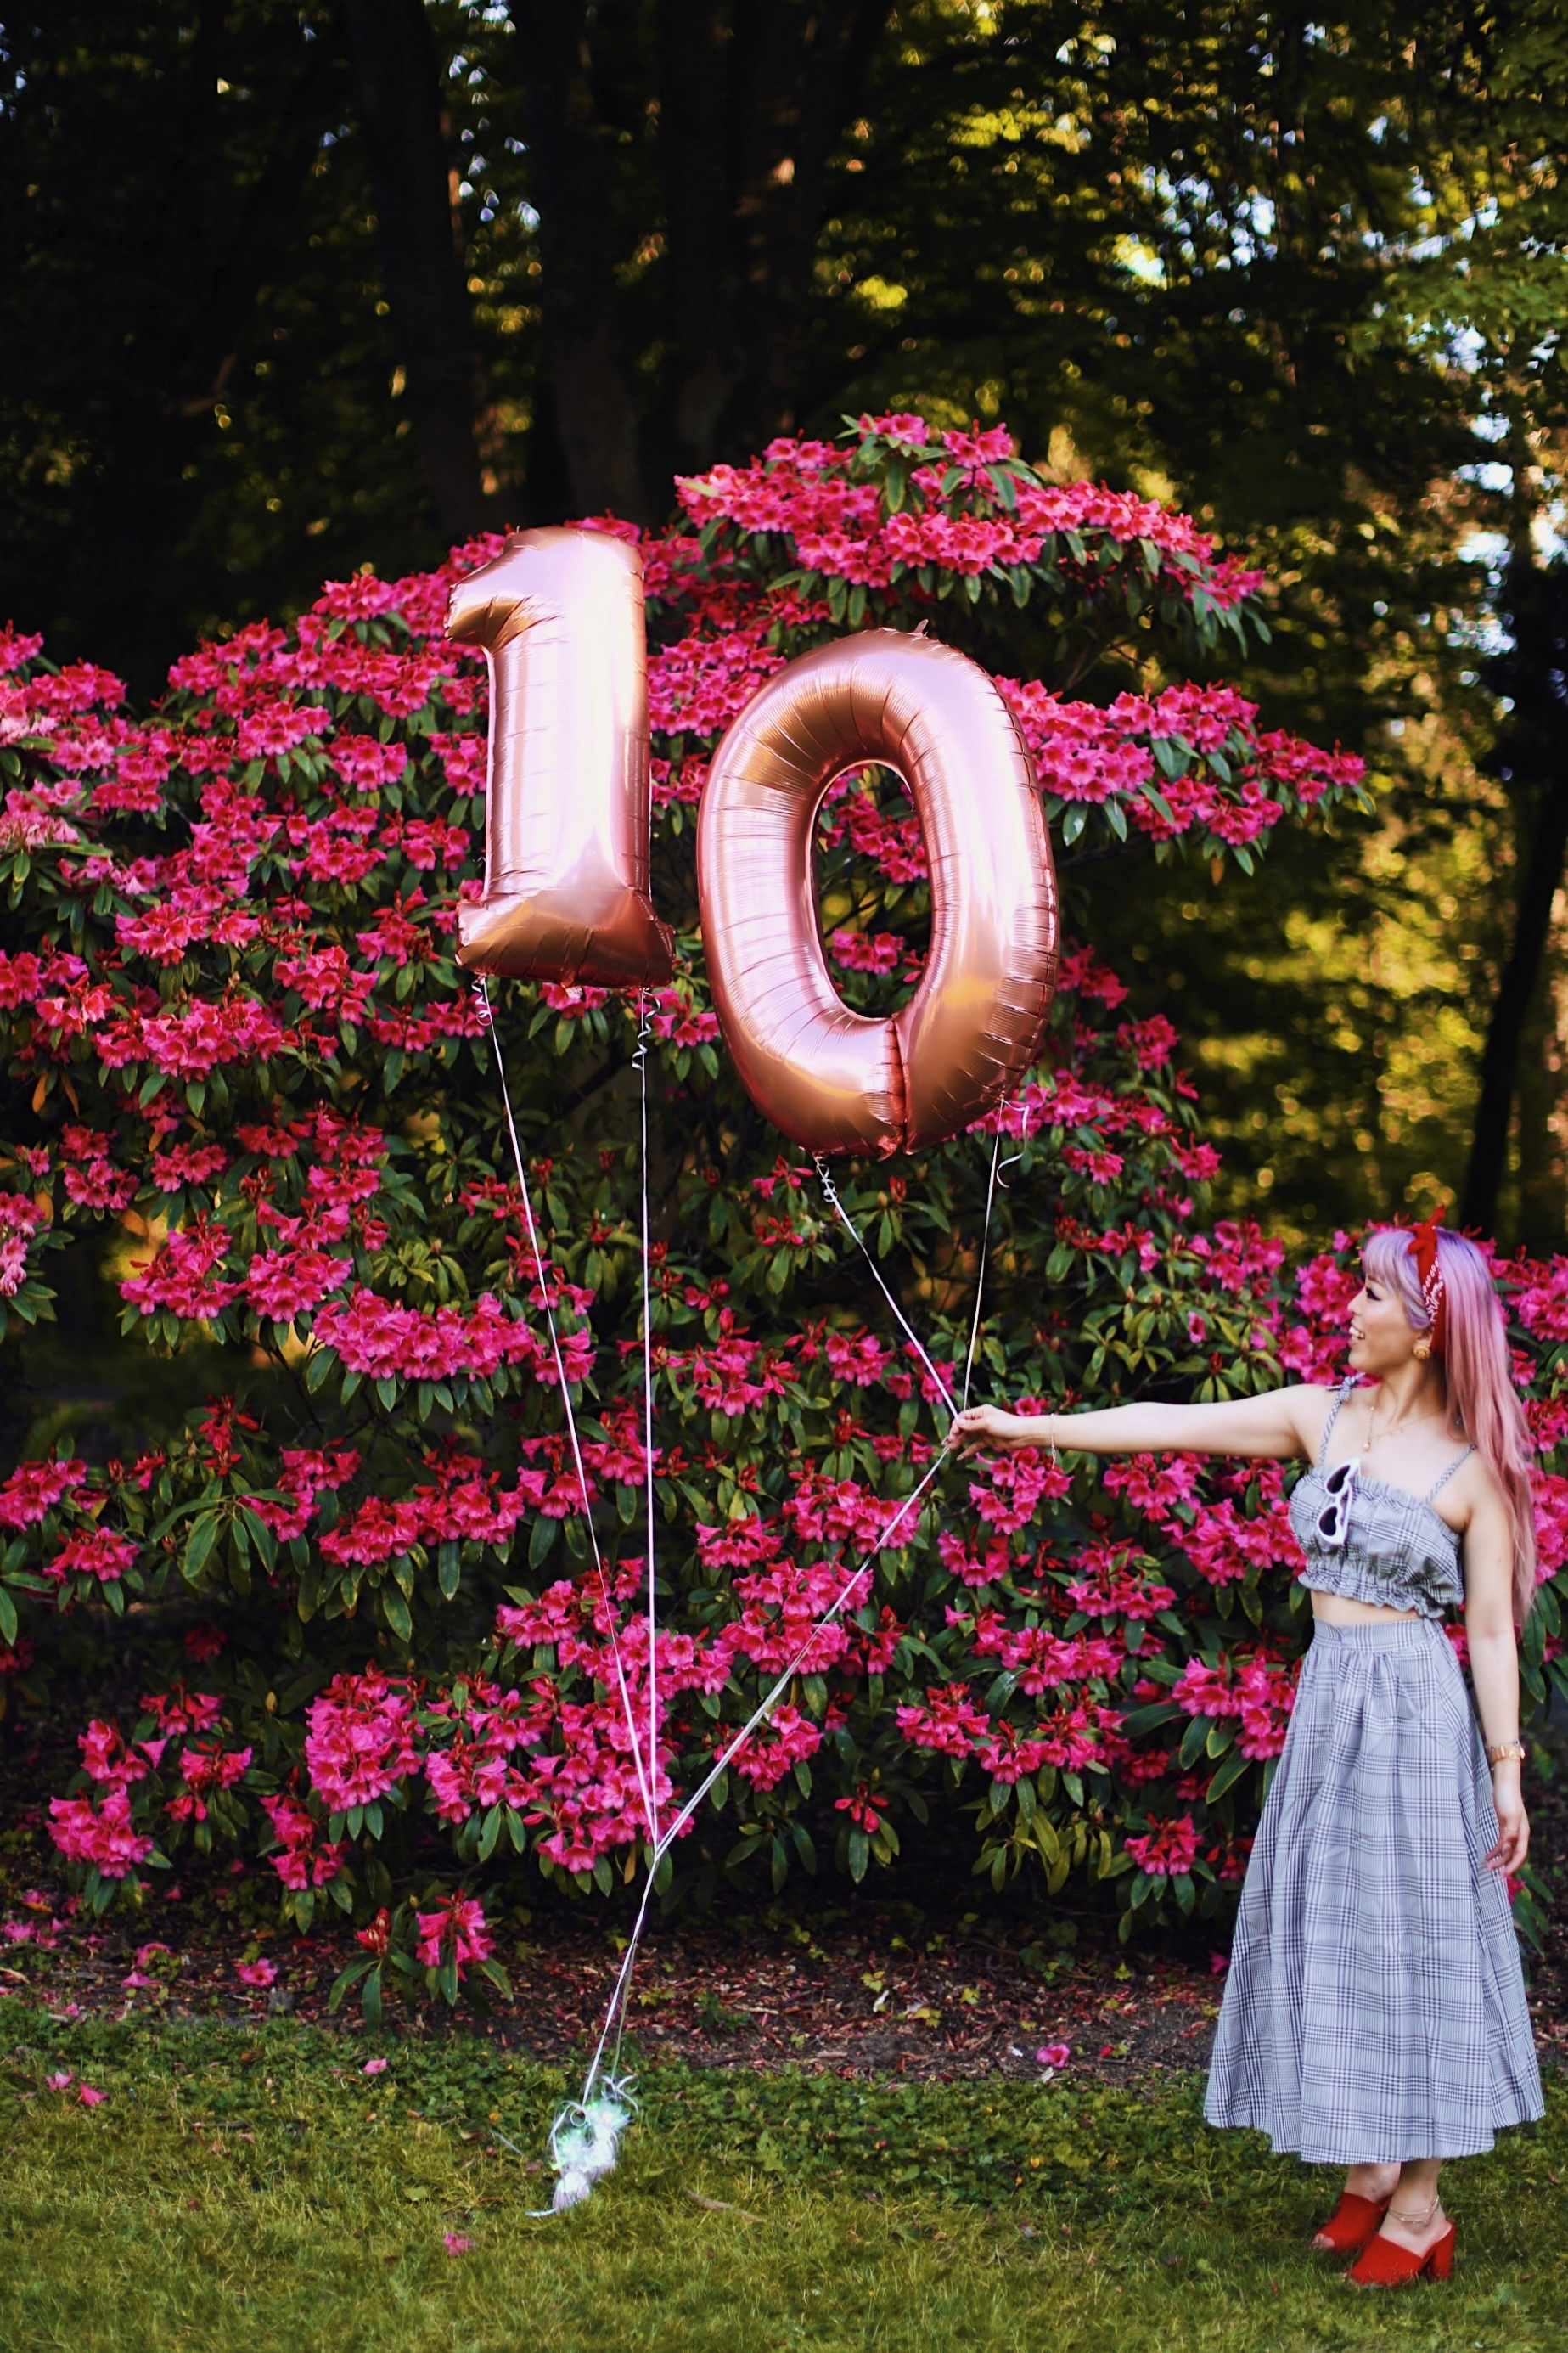 Aika's Love Closet-Seattle Style Life Style Blogger-Japanese-10 Year Anniversary-living in America-what I've learned from Living Abroad-life lessons-pink hair-zero uv heart sunglasses-rose gold balloons-smile 10